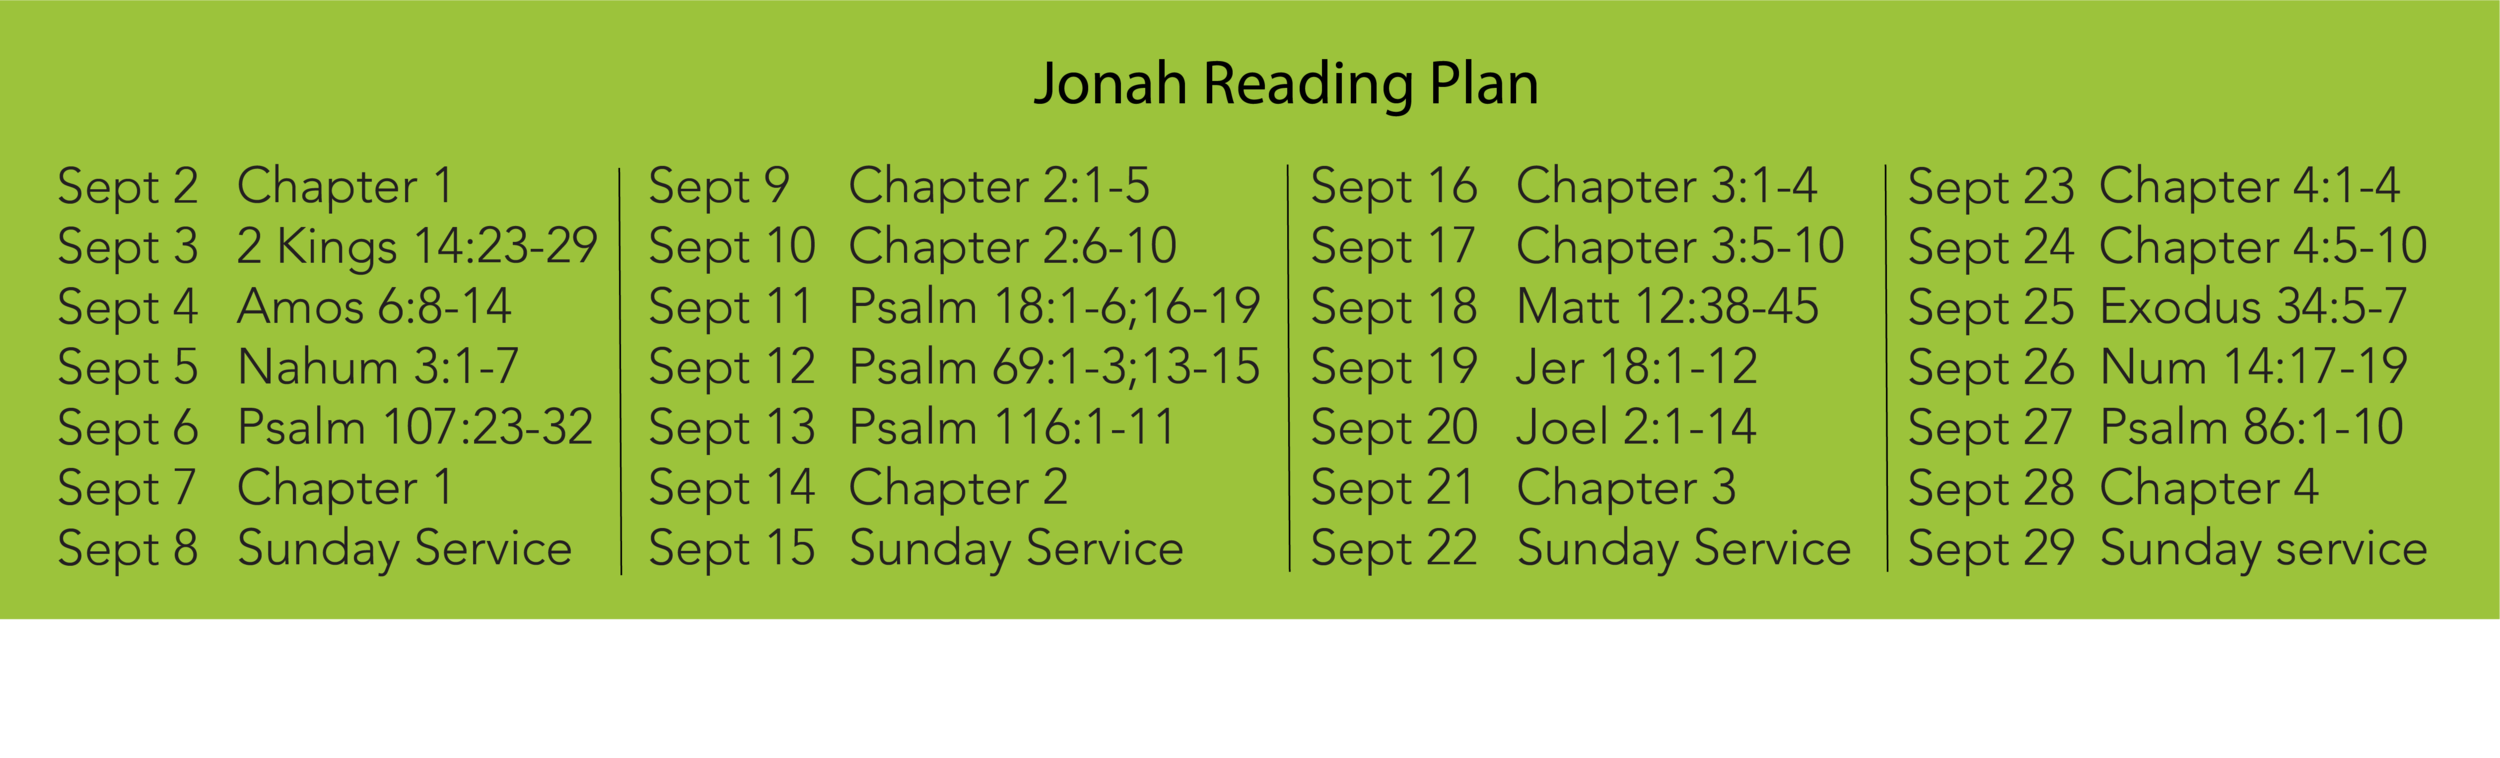 jonah reading for web.png